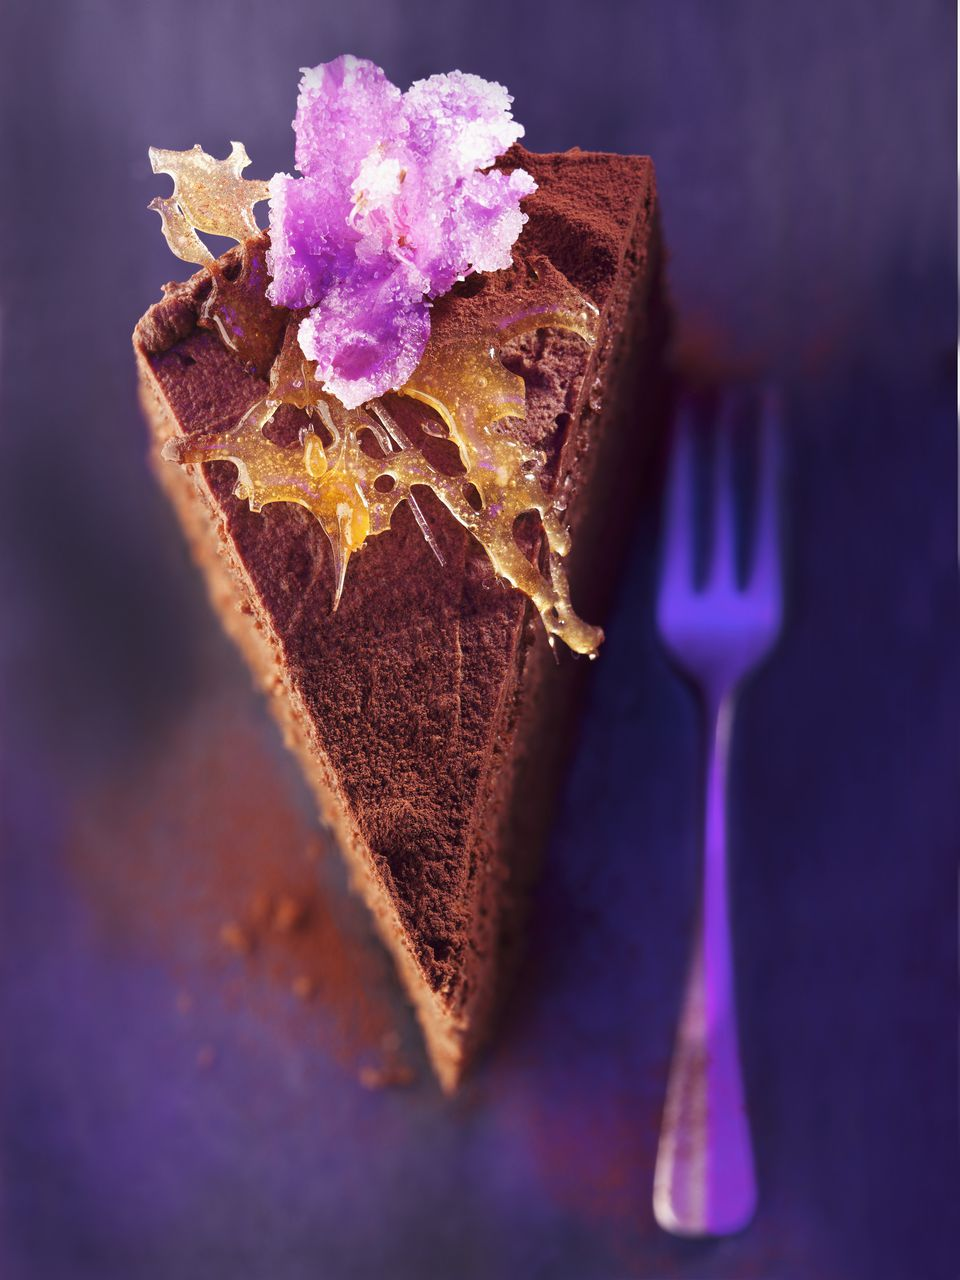 Slice of chocolate layer cake with caramel and candied flowers